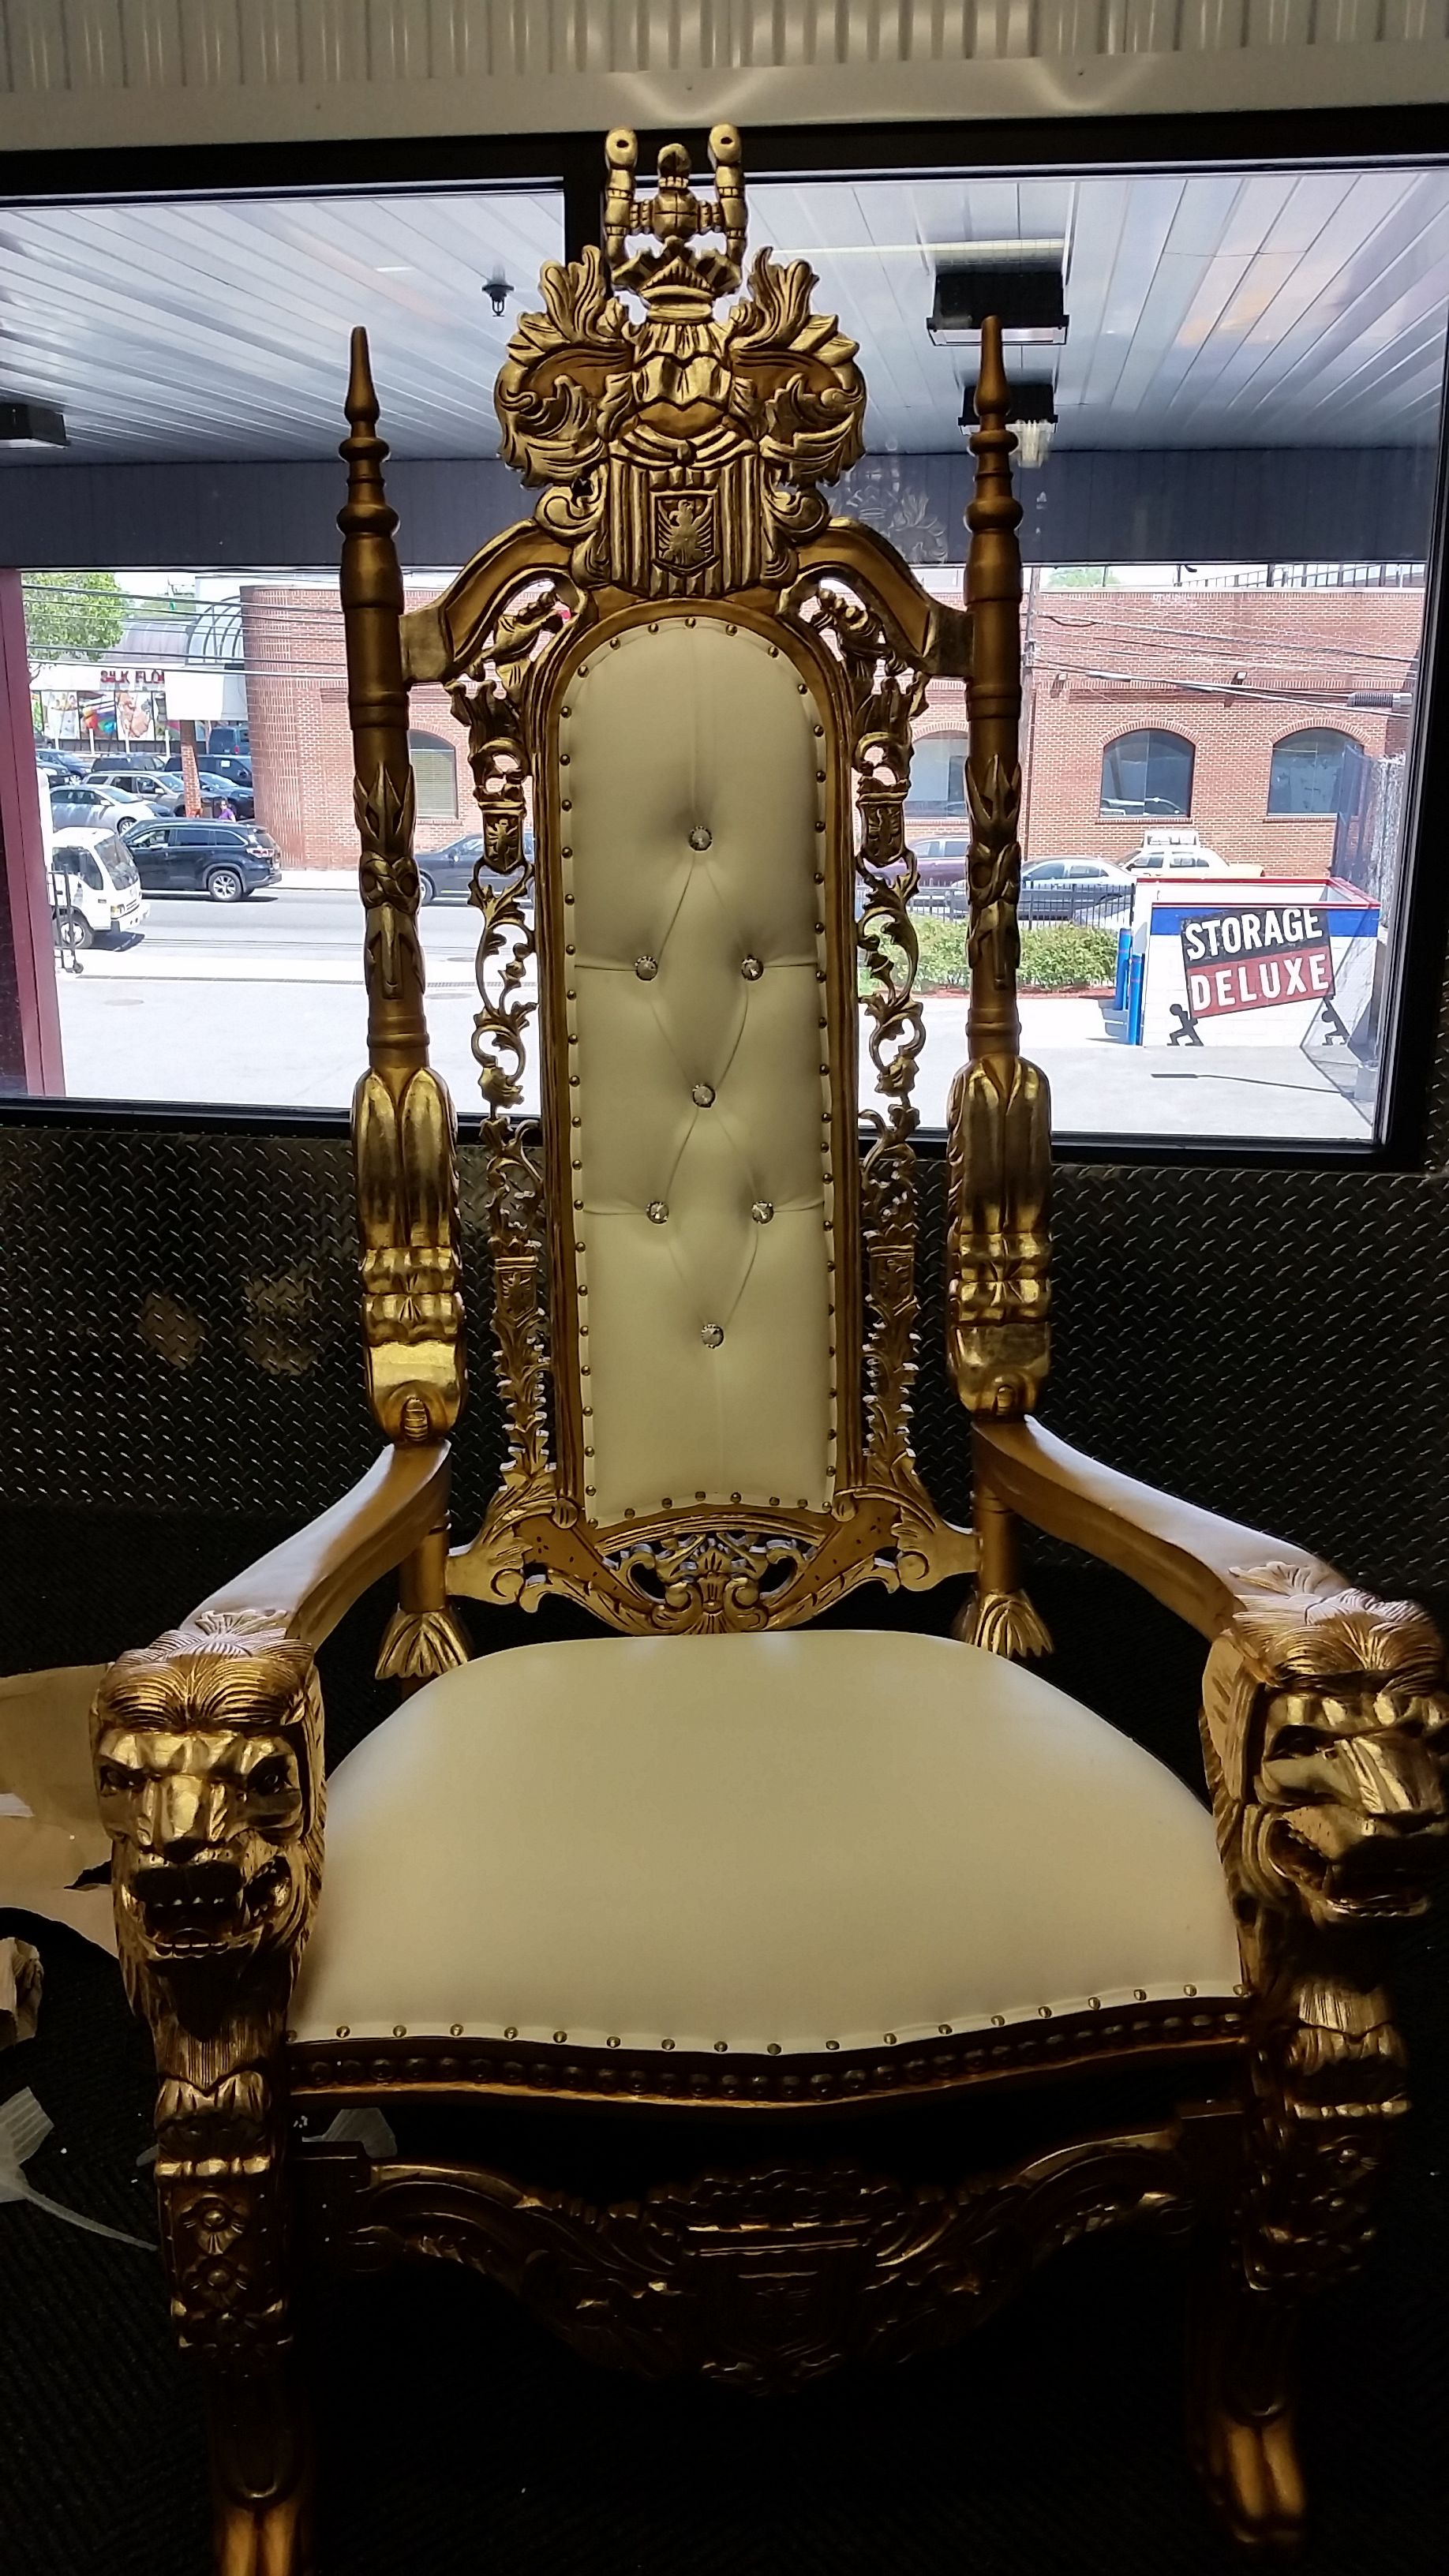 Baby Shower Chairs For Rent Fabric To Reupholster Kitchen This Is A Beautiful Throne Chair Any Event